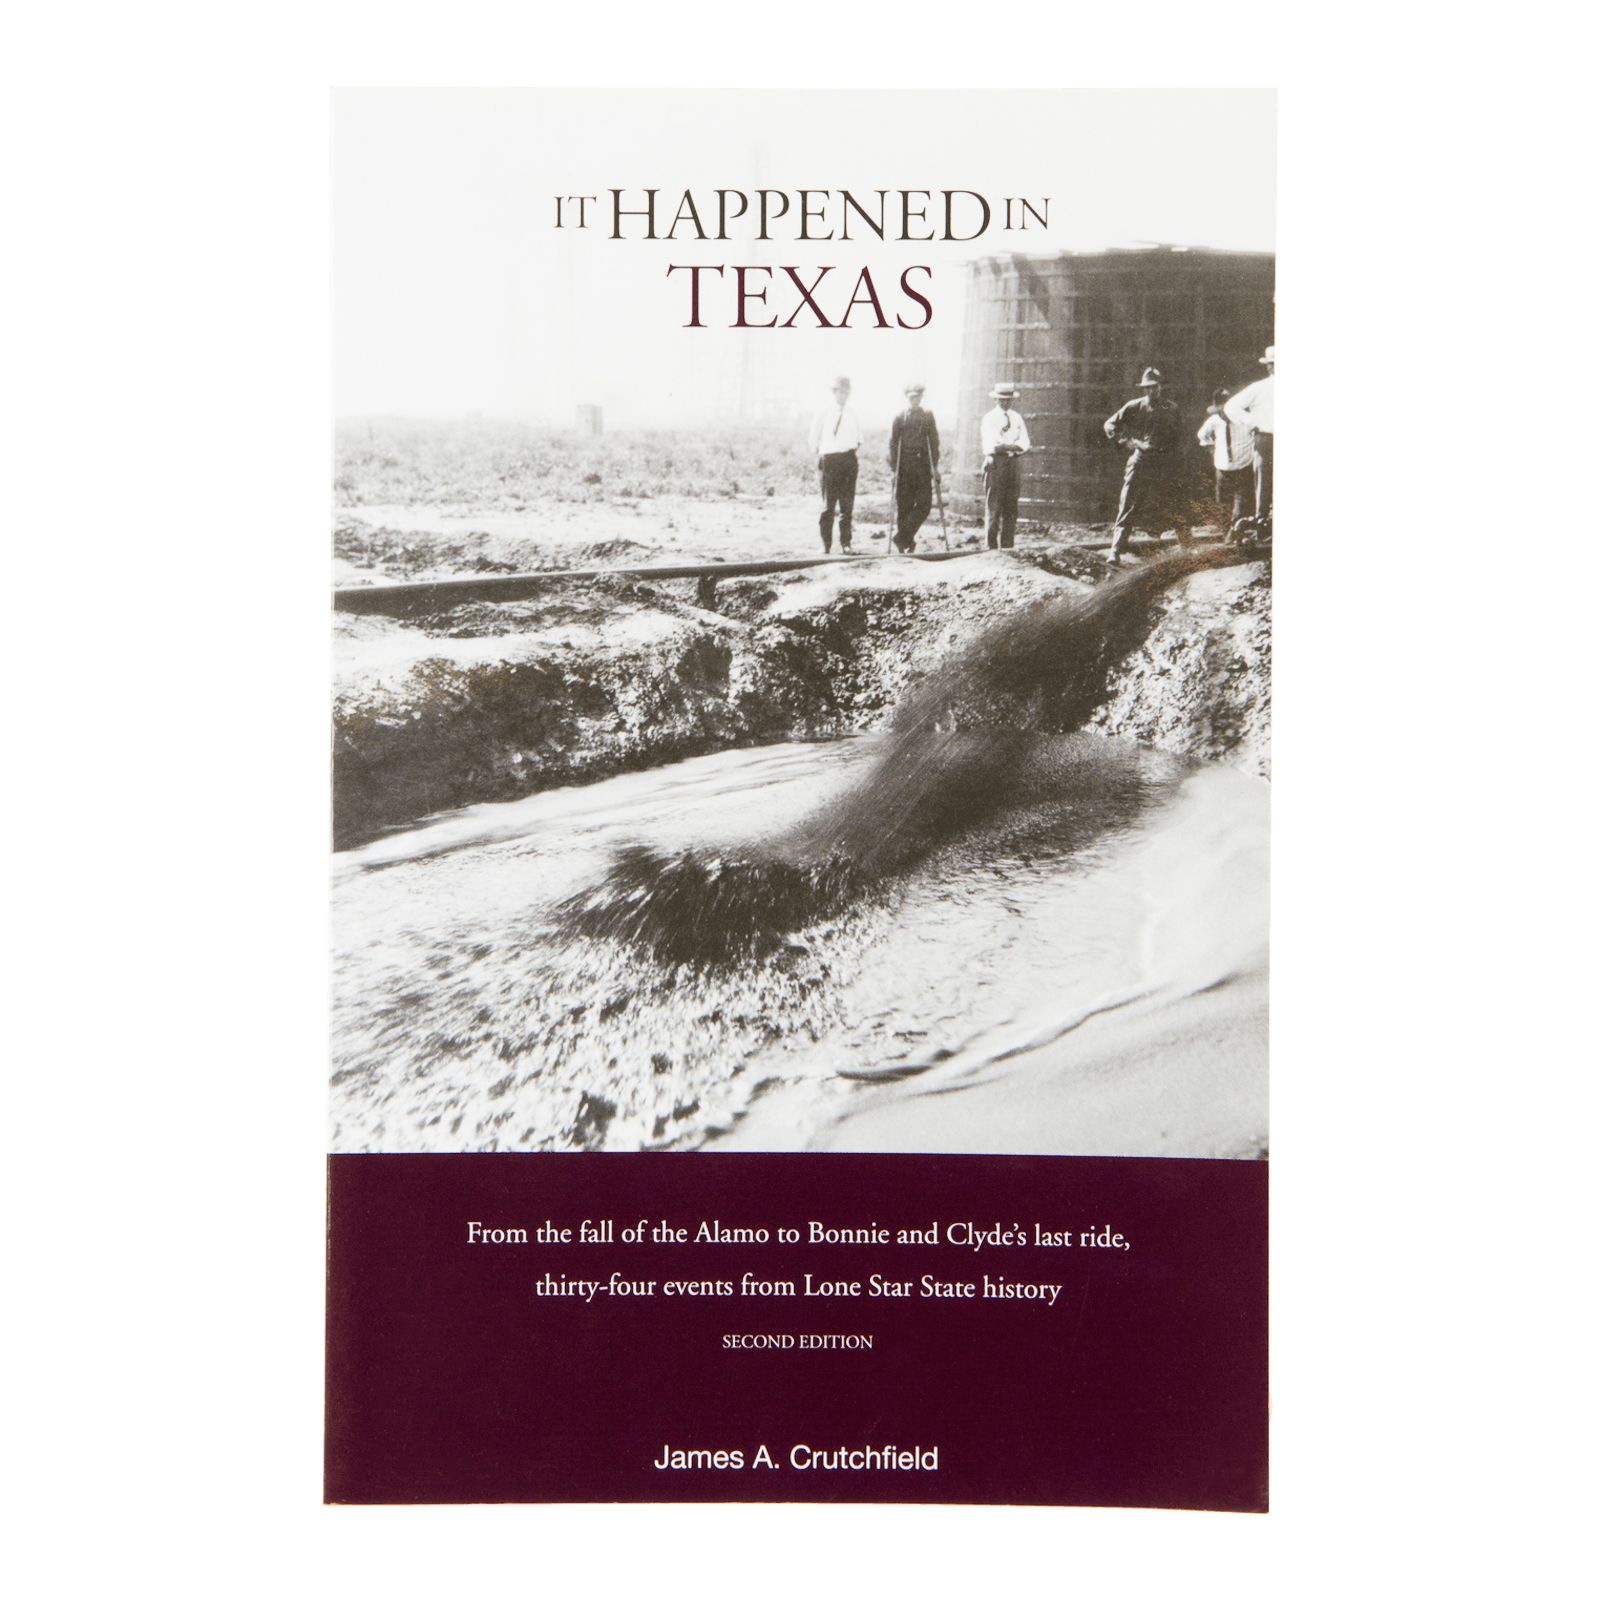 It Happened In Texas: Thirty Four Events from Lone Star State History